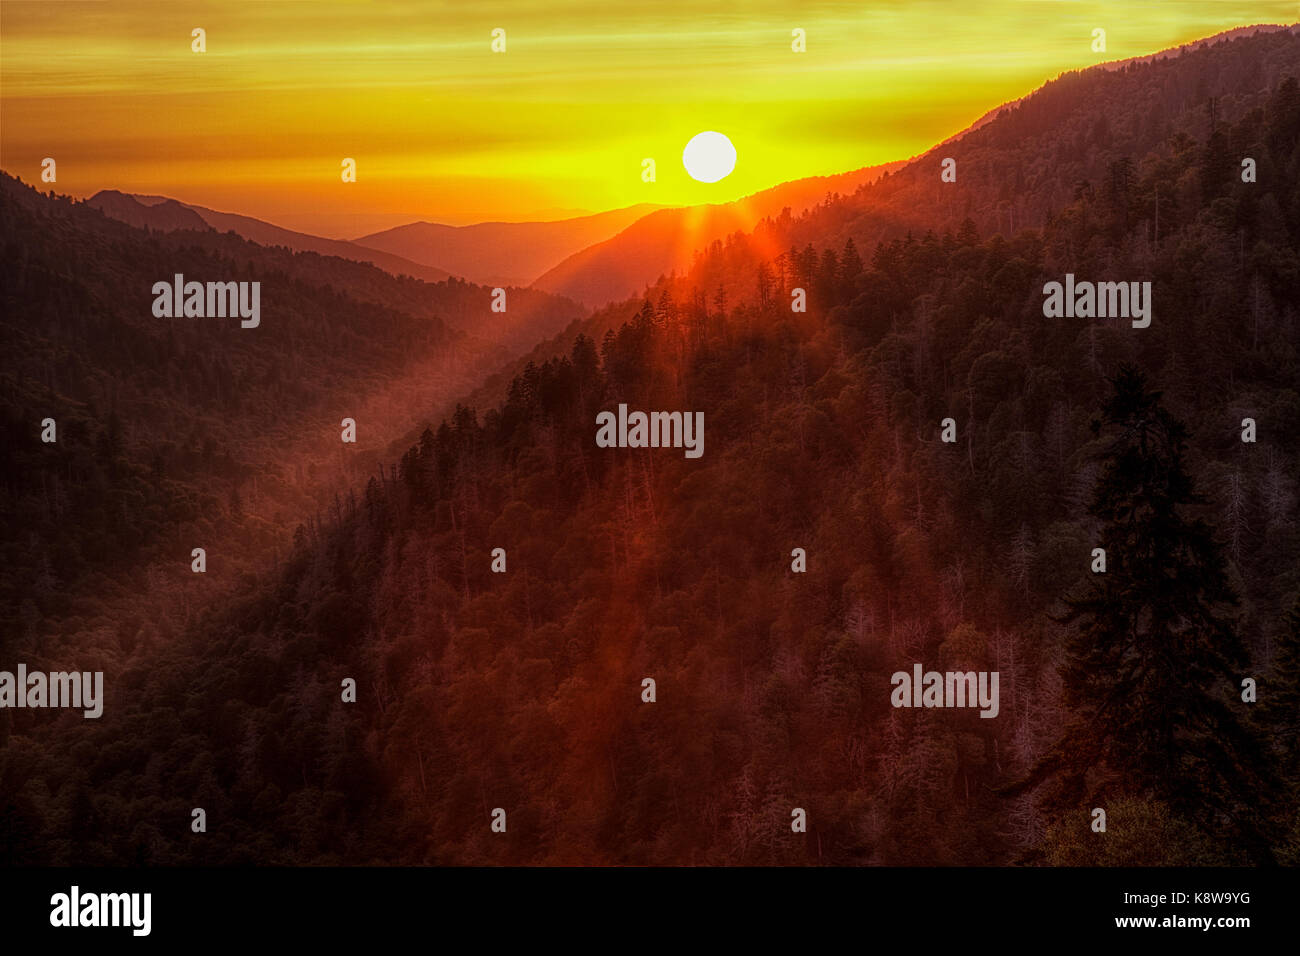 The setting sun sends its warm rays over the mountainsides at the Morton Overlook in the Great Smoky Mountains National - Stock Image